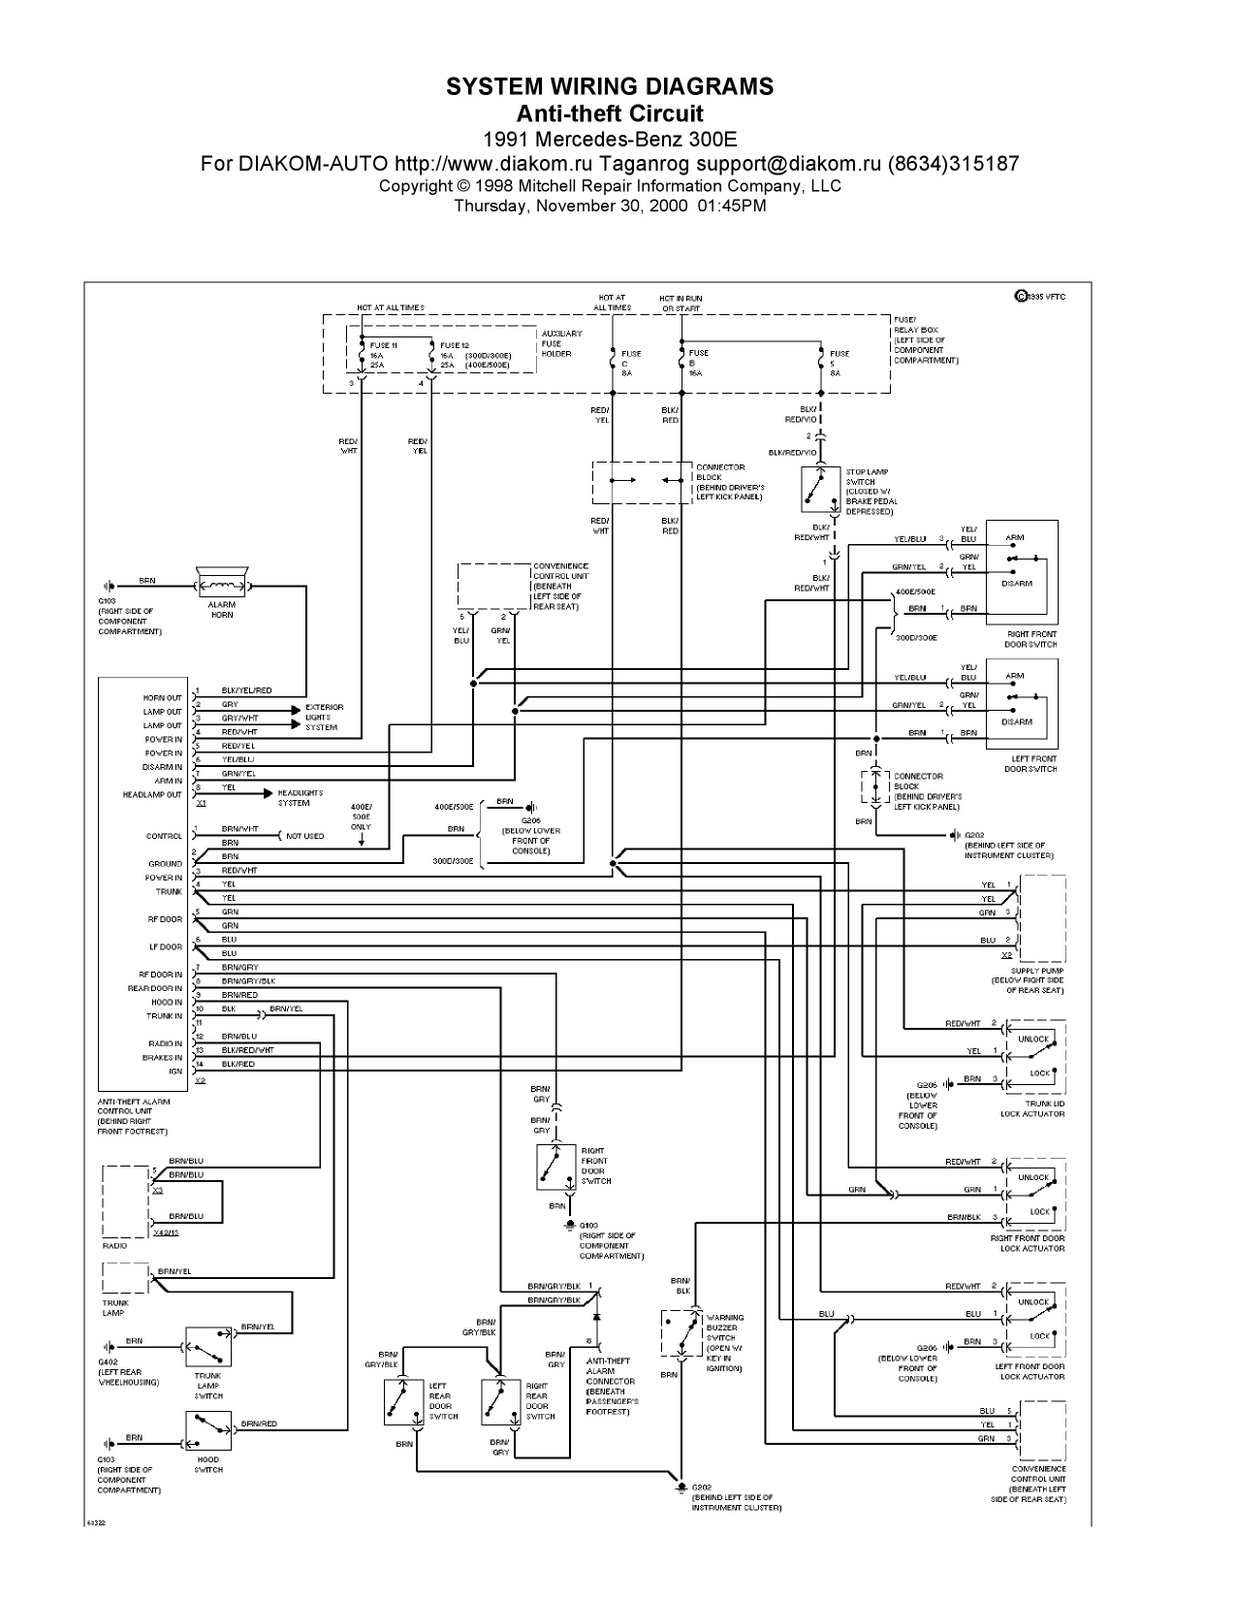 mercedes 300 wiring diagram wiring diagram blogs rh 17 14 1 restaurant freinsheimer hof de mercedes [ 1236 x 1600 Pixel ]